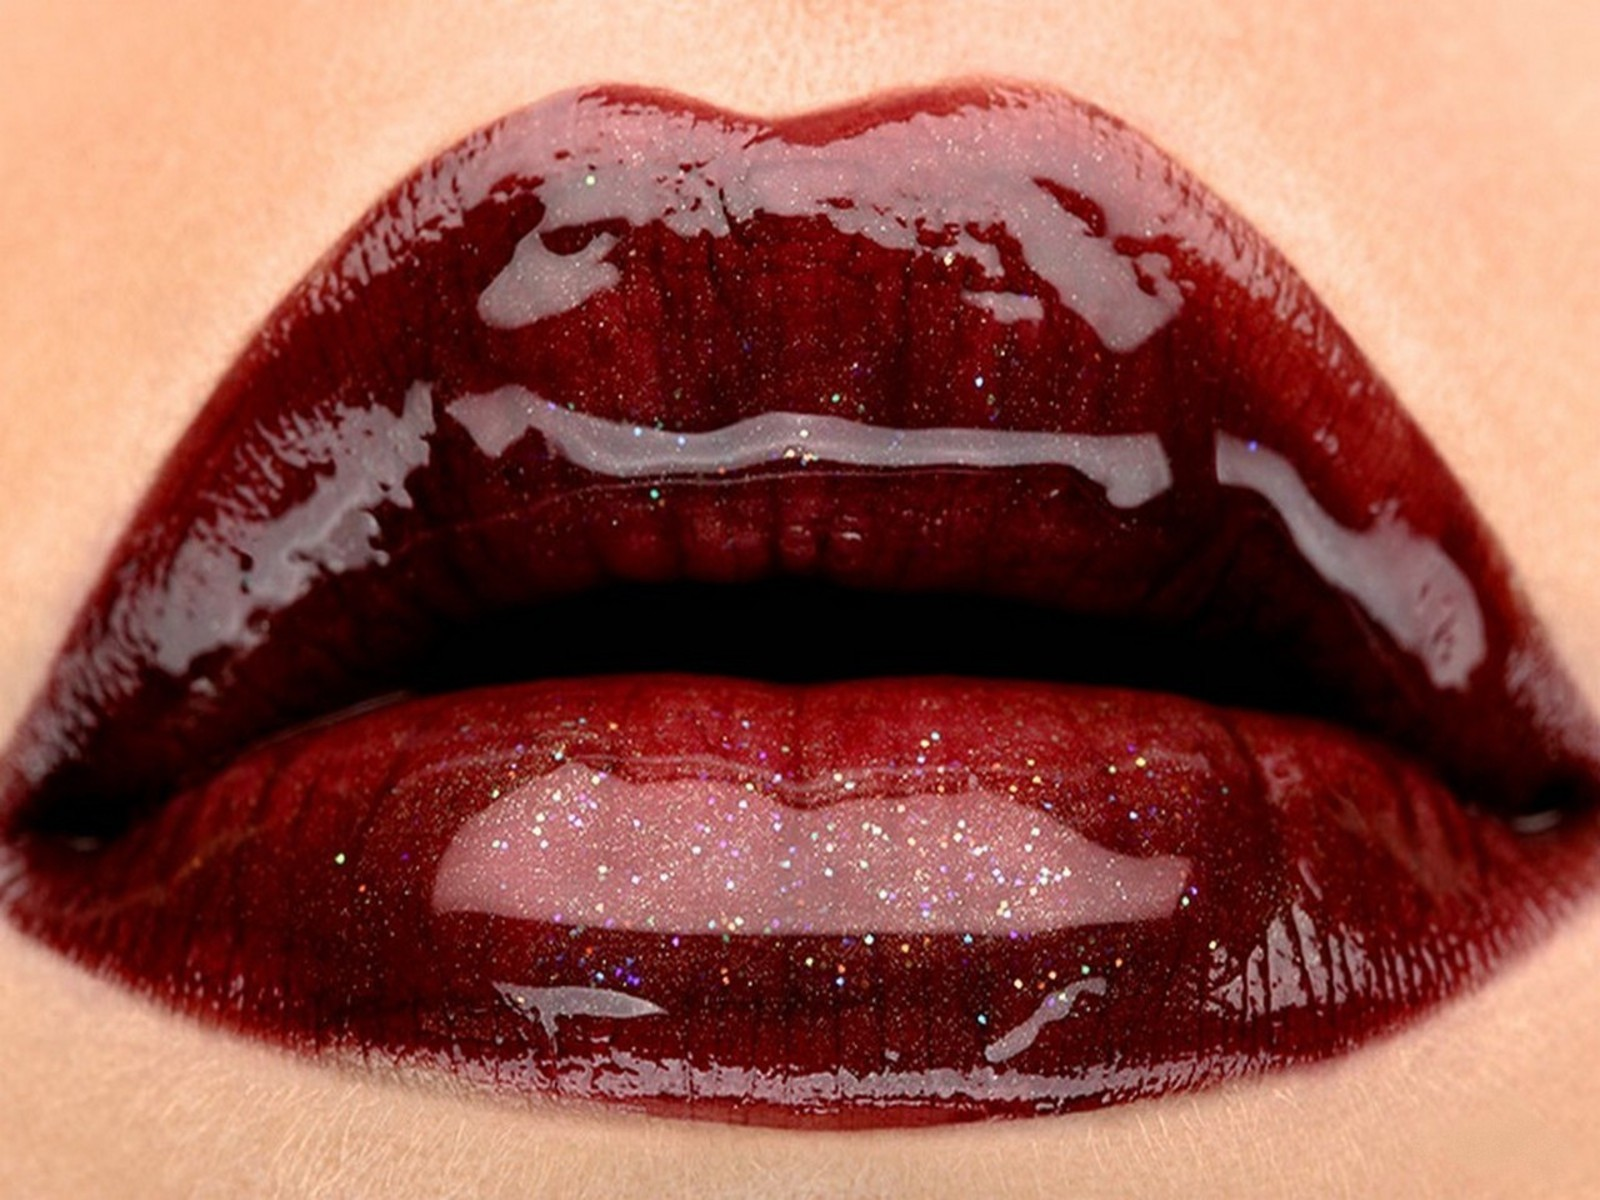 close-up red lips mouth HD Wallpaper